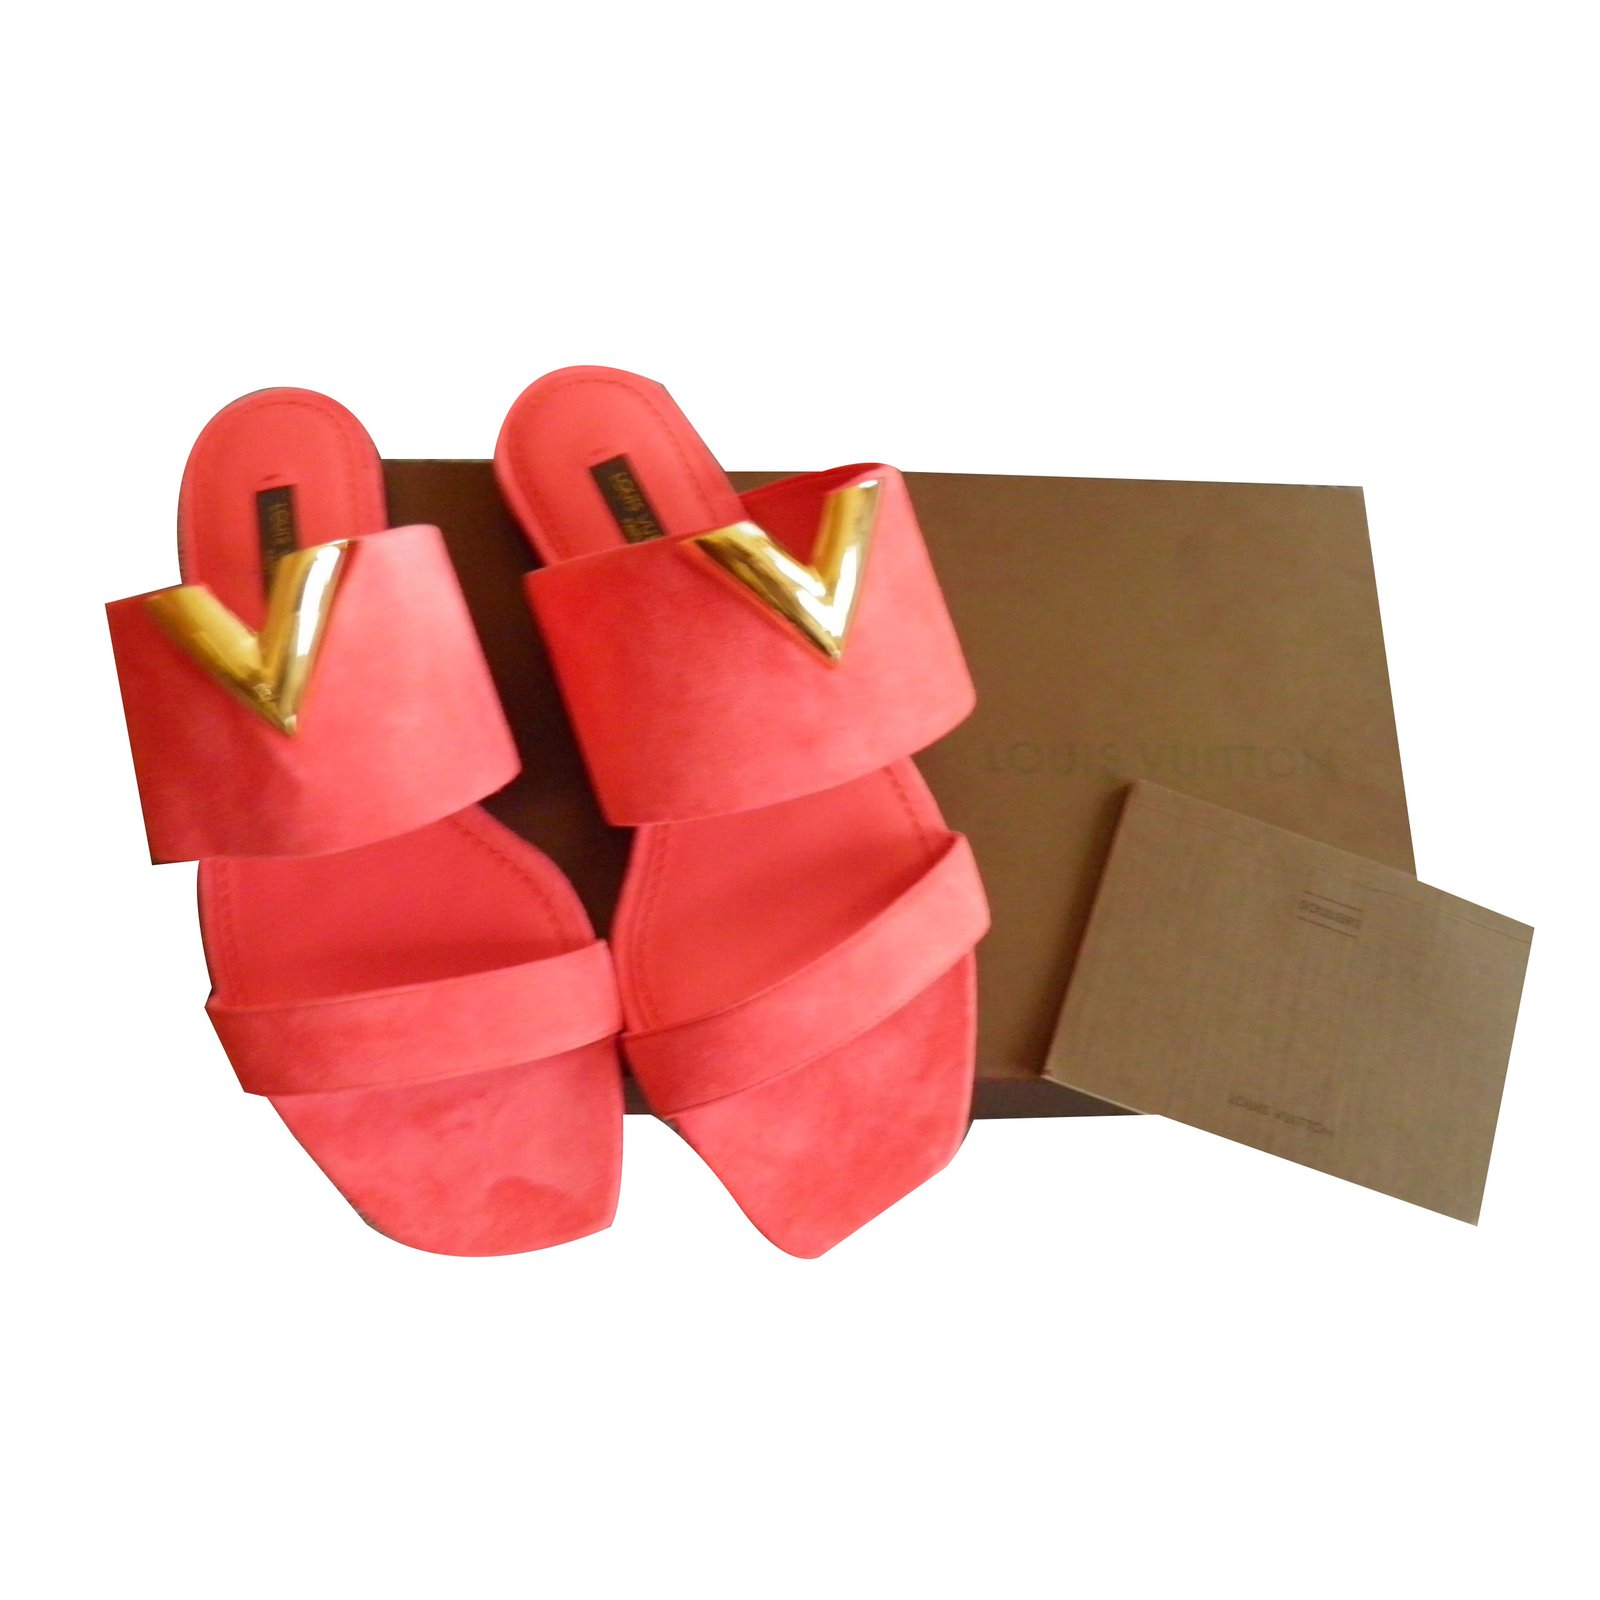 4c2dac78d39d Louis Vuitton new wave Sandals Suede Pink ref.53398 - Joli Closet